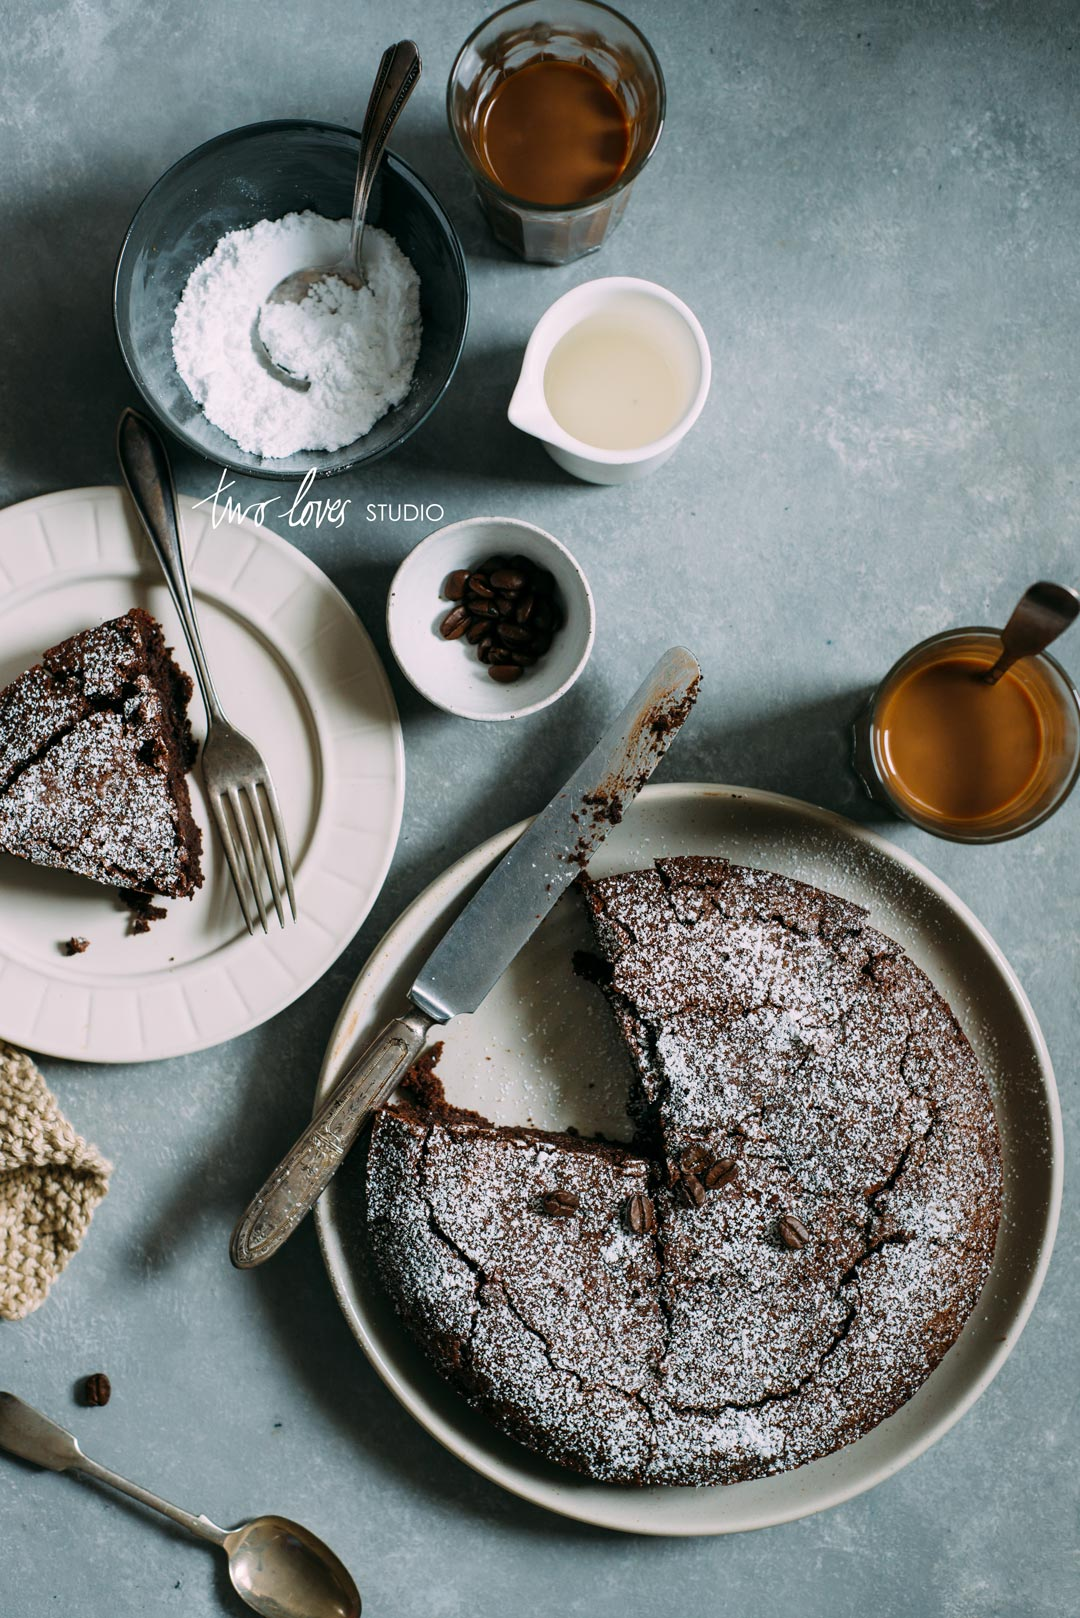 How To Recreate Moody Natural Food Photography Lighting | Recreate moody natural light in food photography & How To Recreate Moody Natural Food Photography Lighting